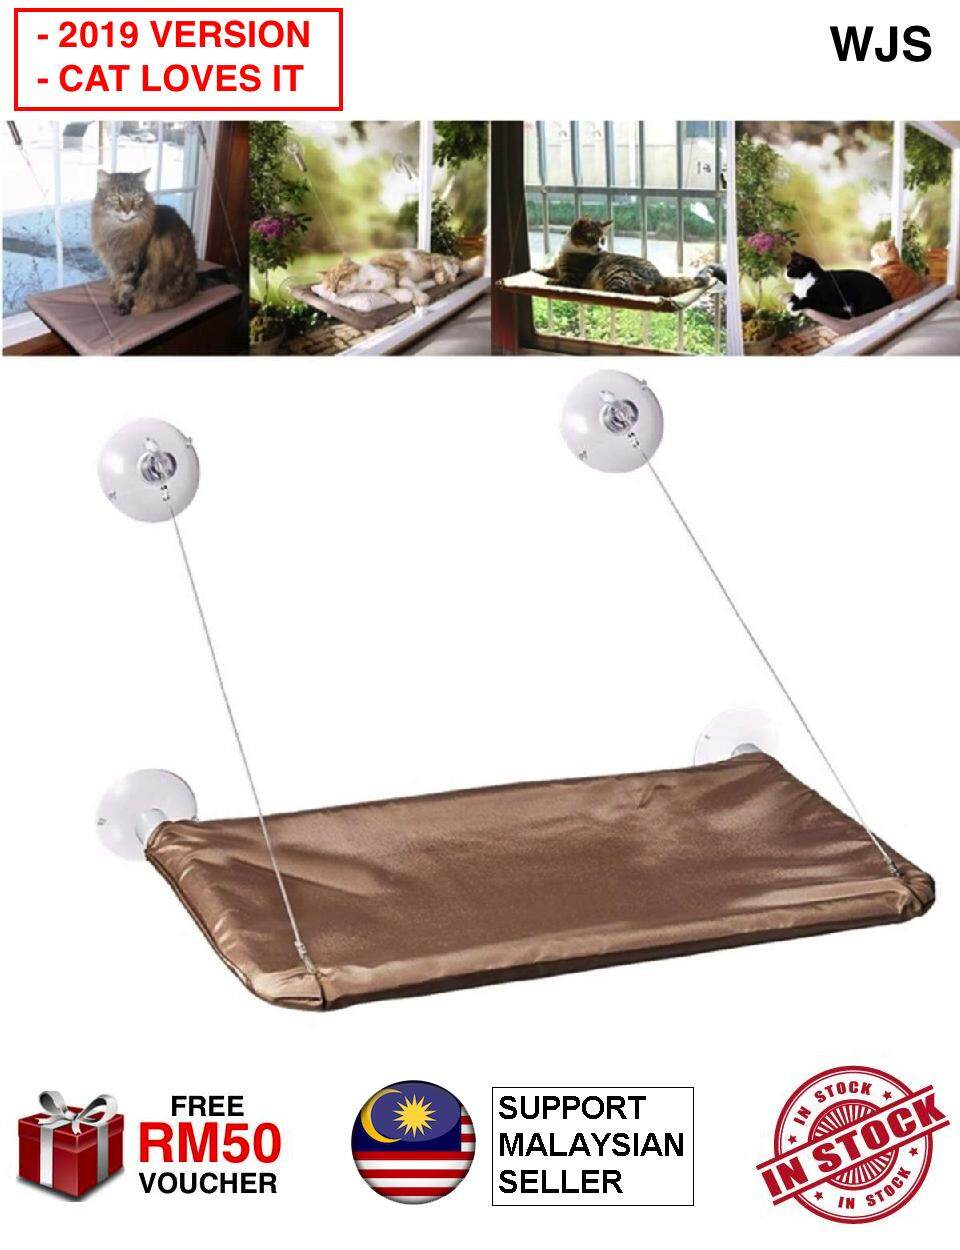 (2019 VERSION) WJS 2019 Version Durable Comfortable Sunny Seat Window-Mounted Cat Bed Hanging Hammock with Support BROWN [FREE RM 50 VOUCHER]